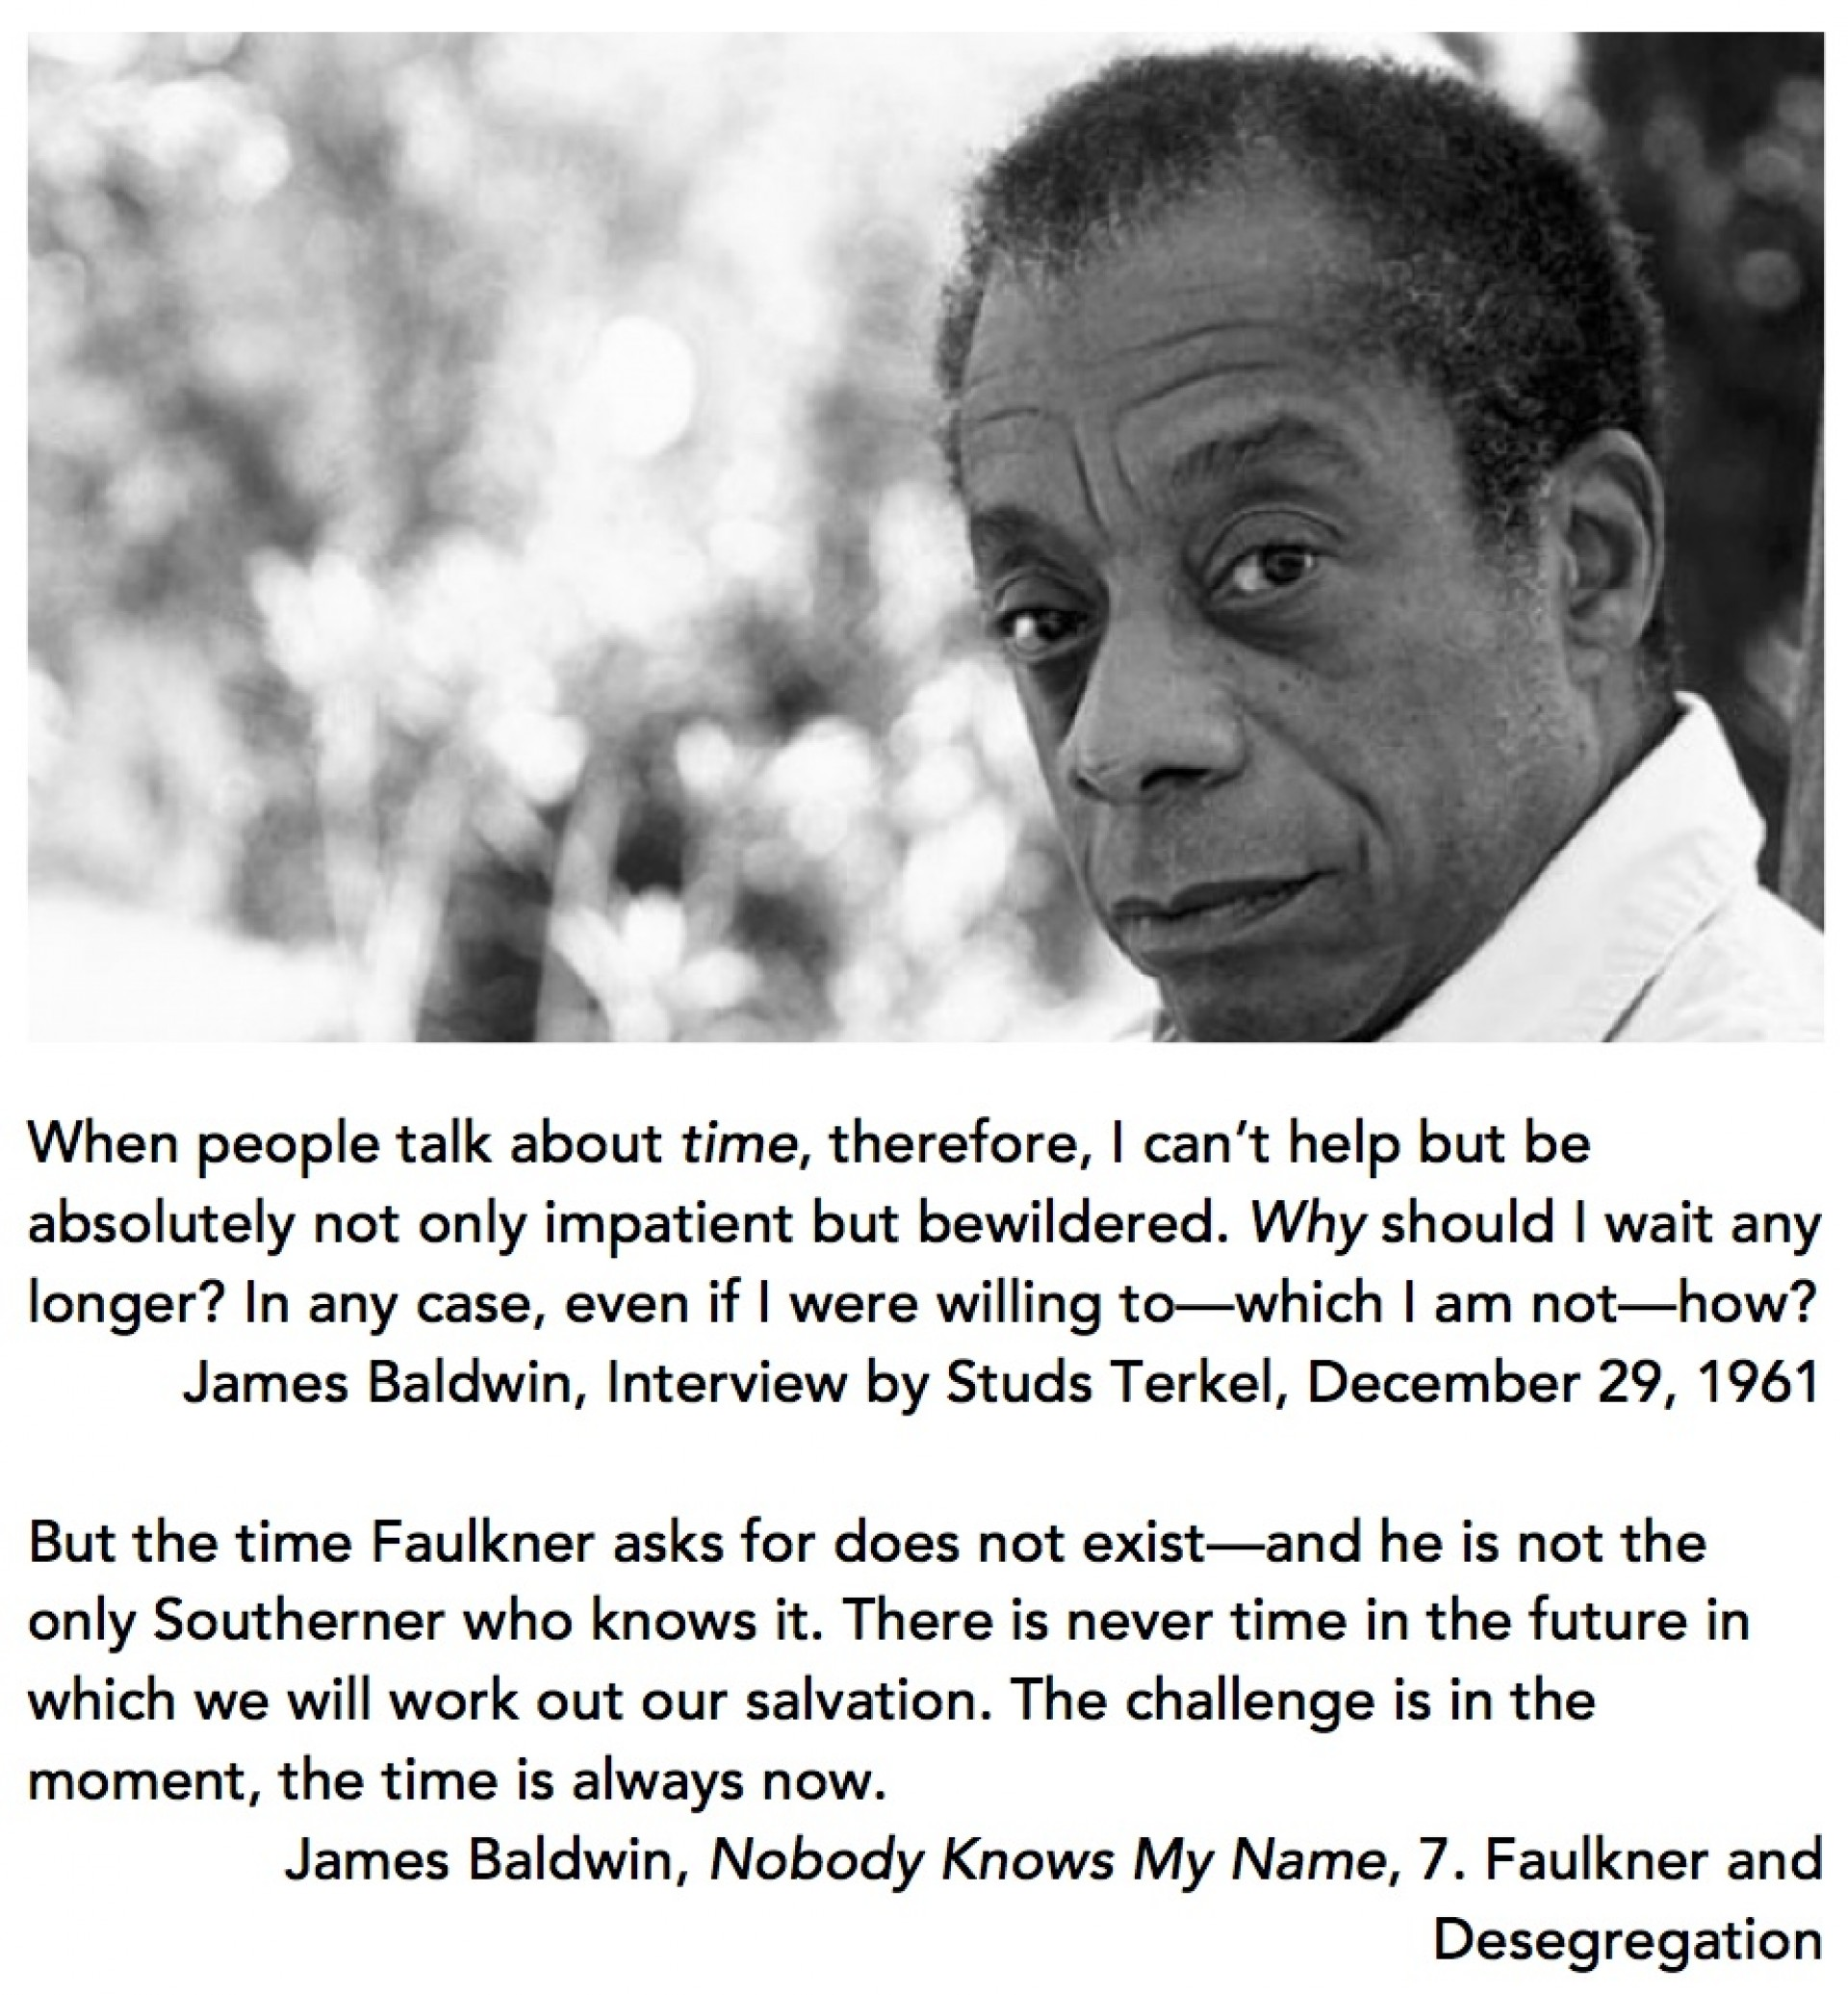 009 The Time Is Always Now James Baldwin Collected Essays Essay Wondrous Google Books Pdf Table Of Contents 1920